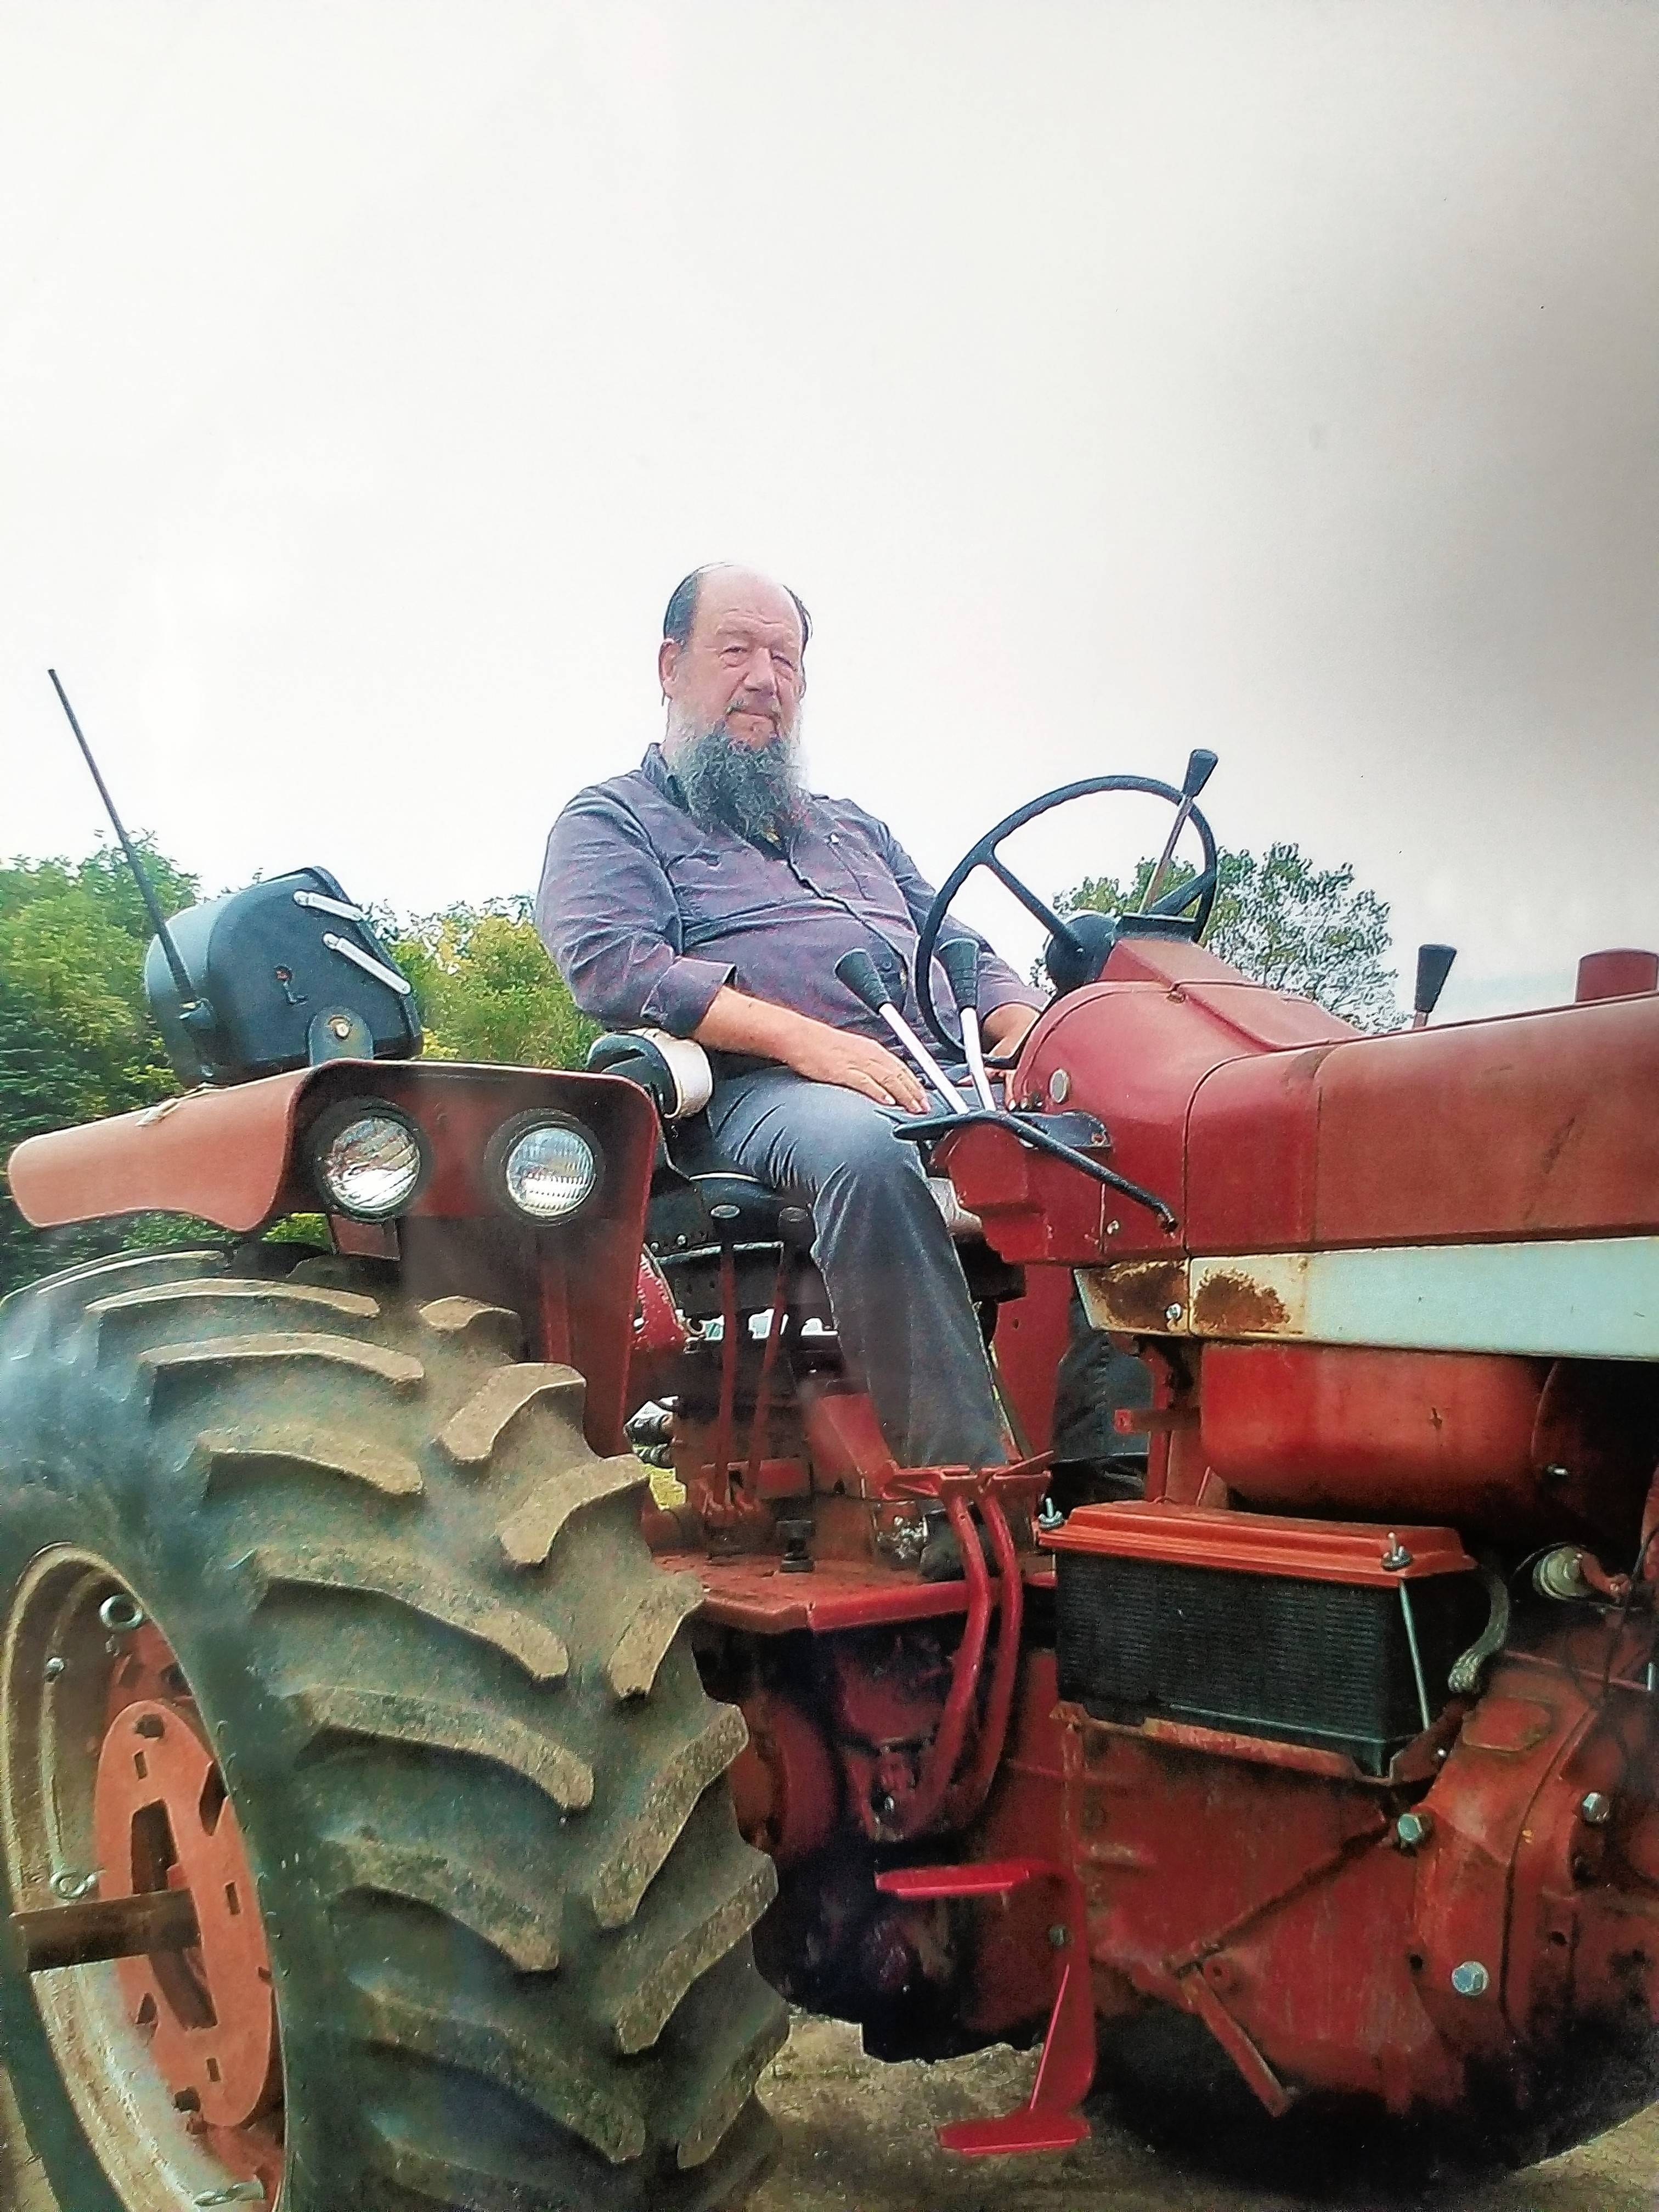 Tim Busse, the longtime owner of Busse Farm in Elk Grove Village, died Wednesday. He was 65. He recently sold the family farm to an investment group that plans a $1 billion technology park.